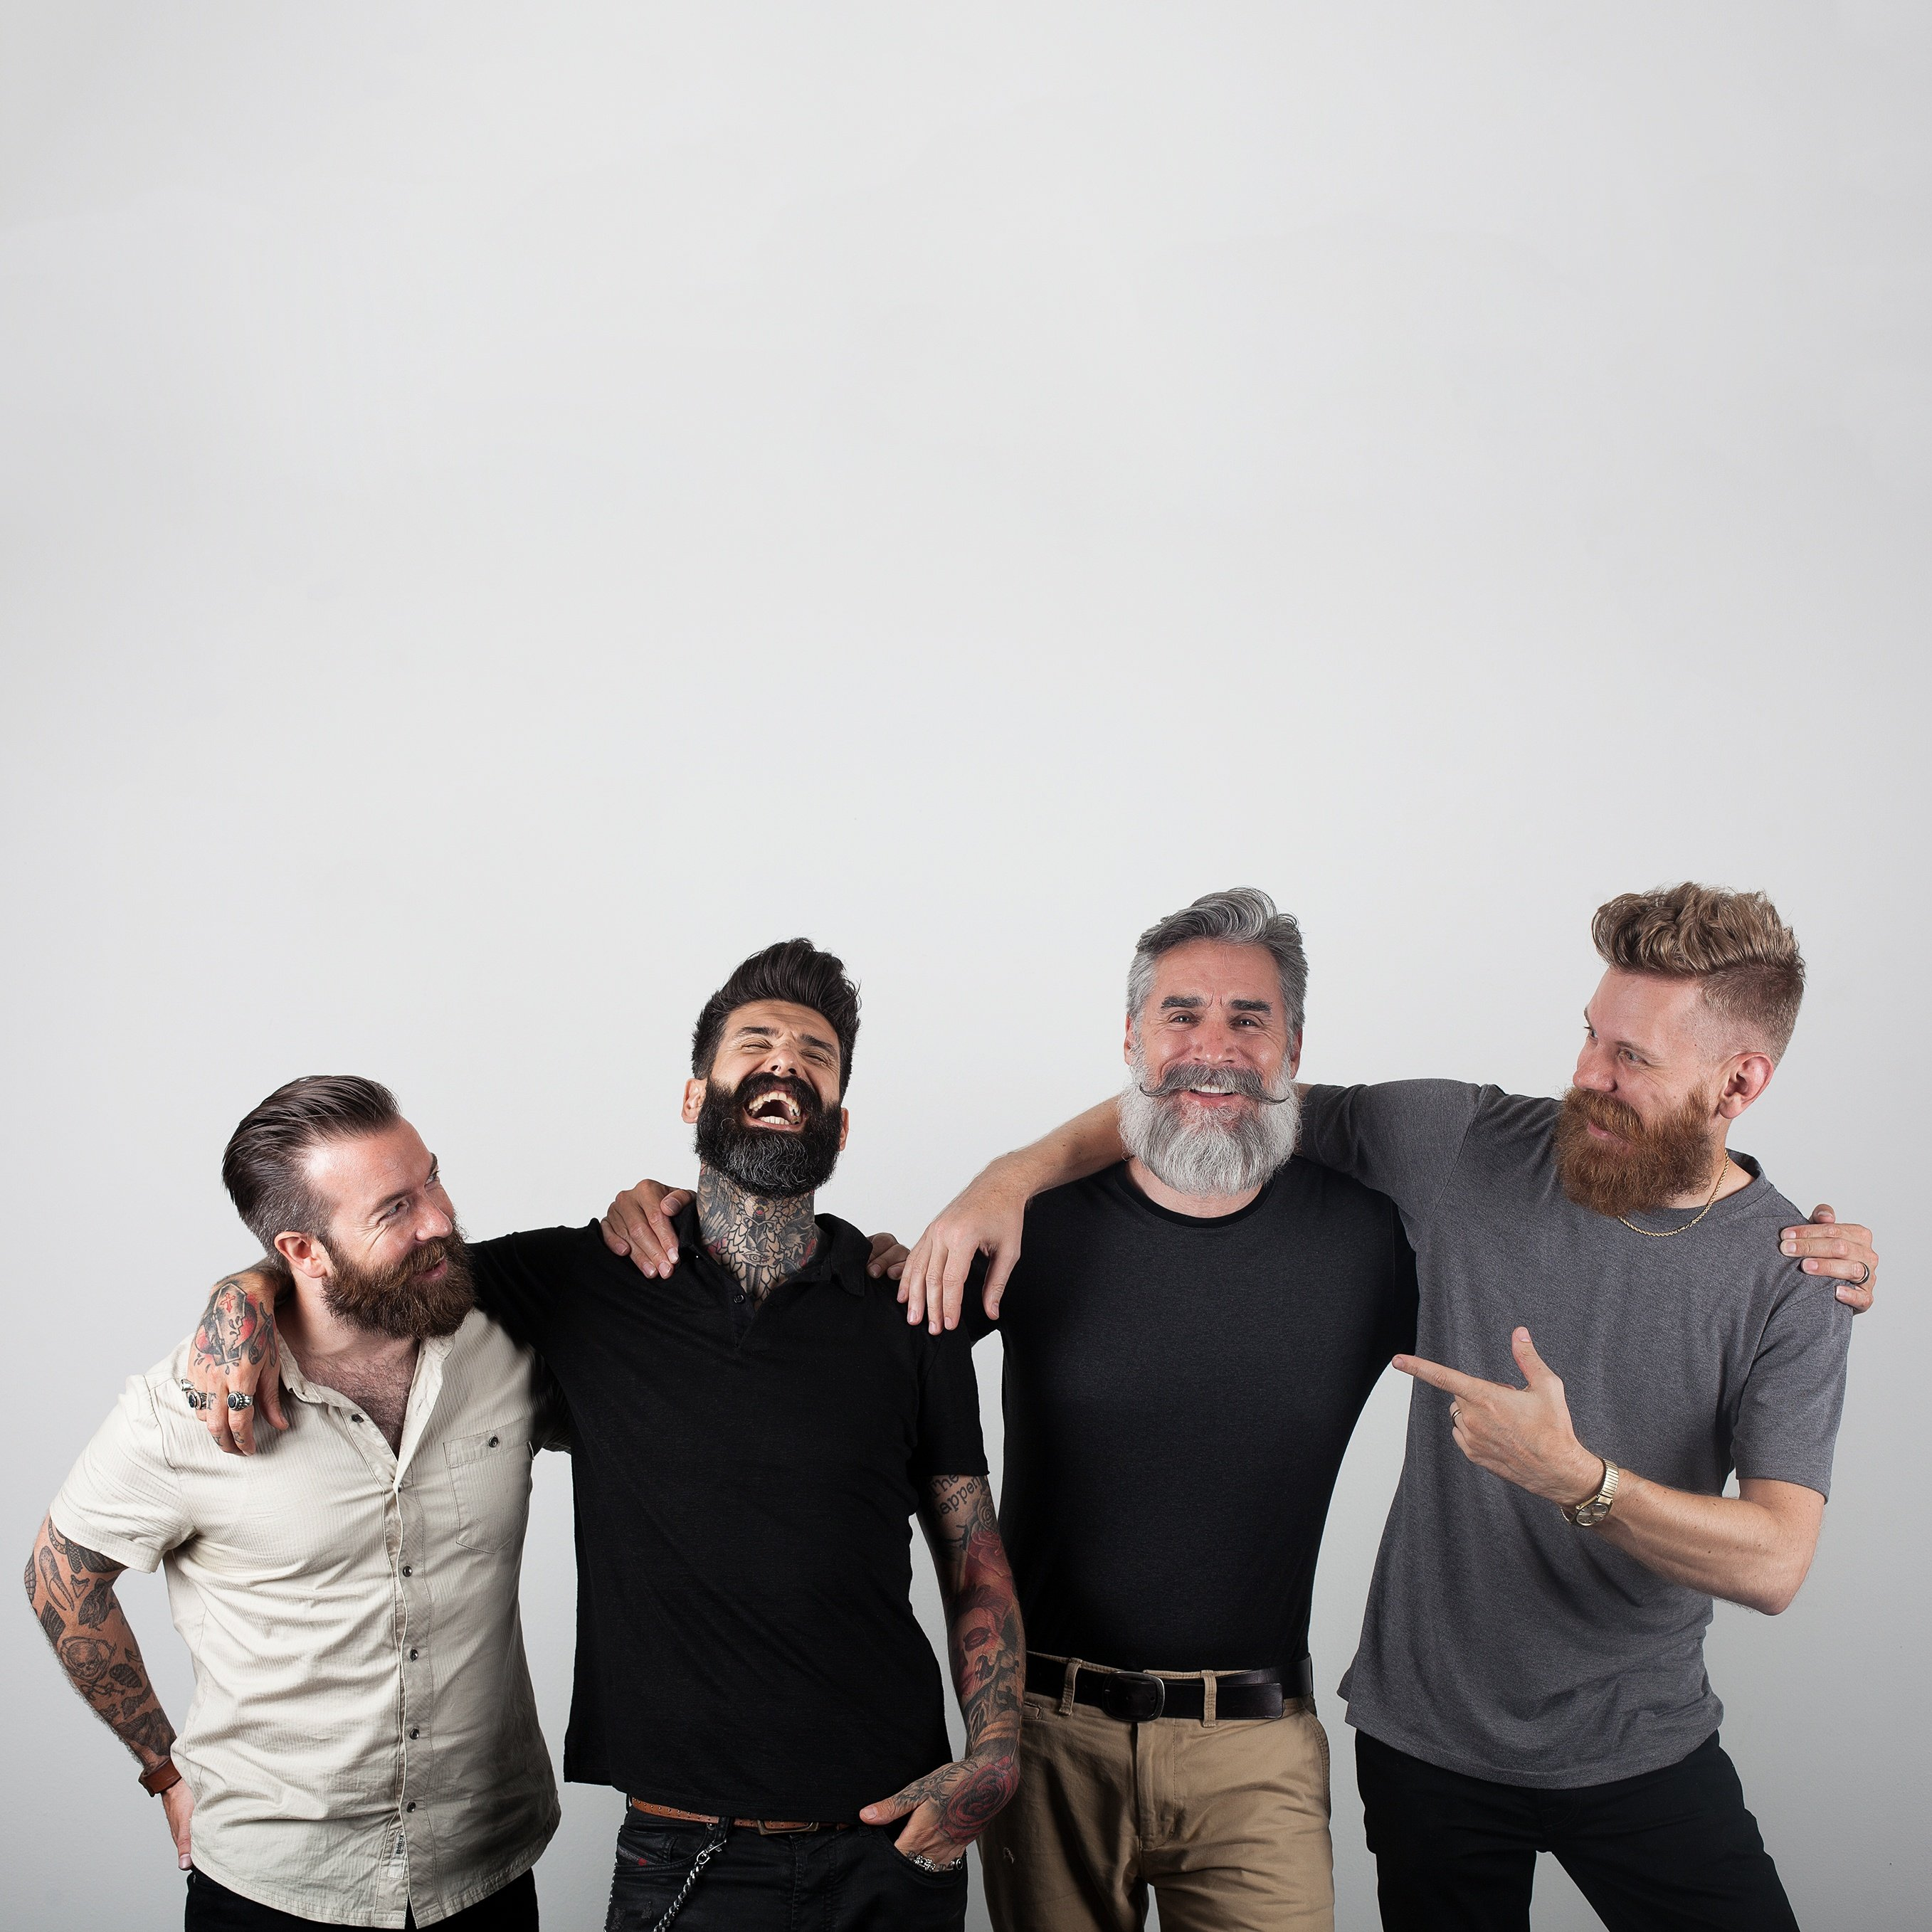 Four men with excellent beards enjoying camaraderie